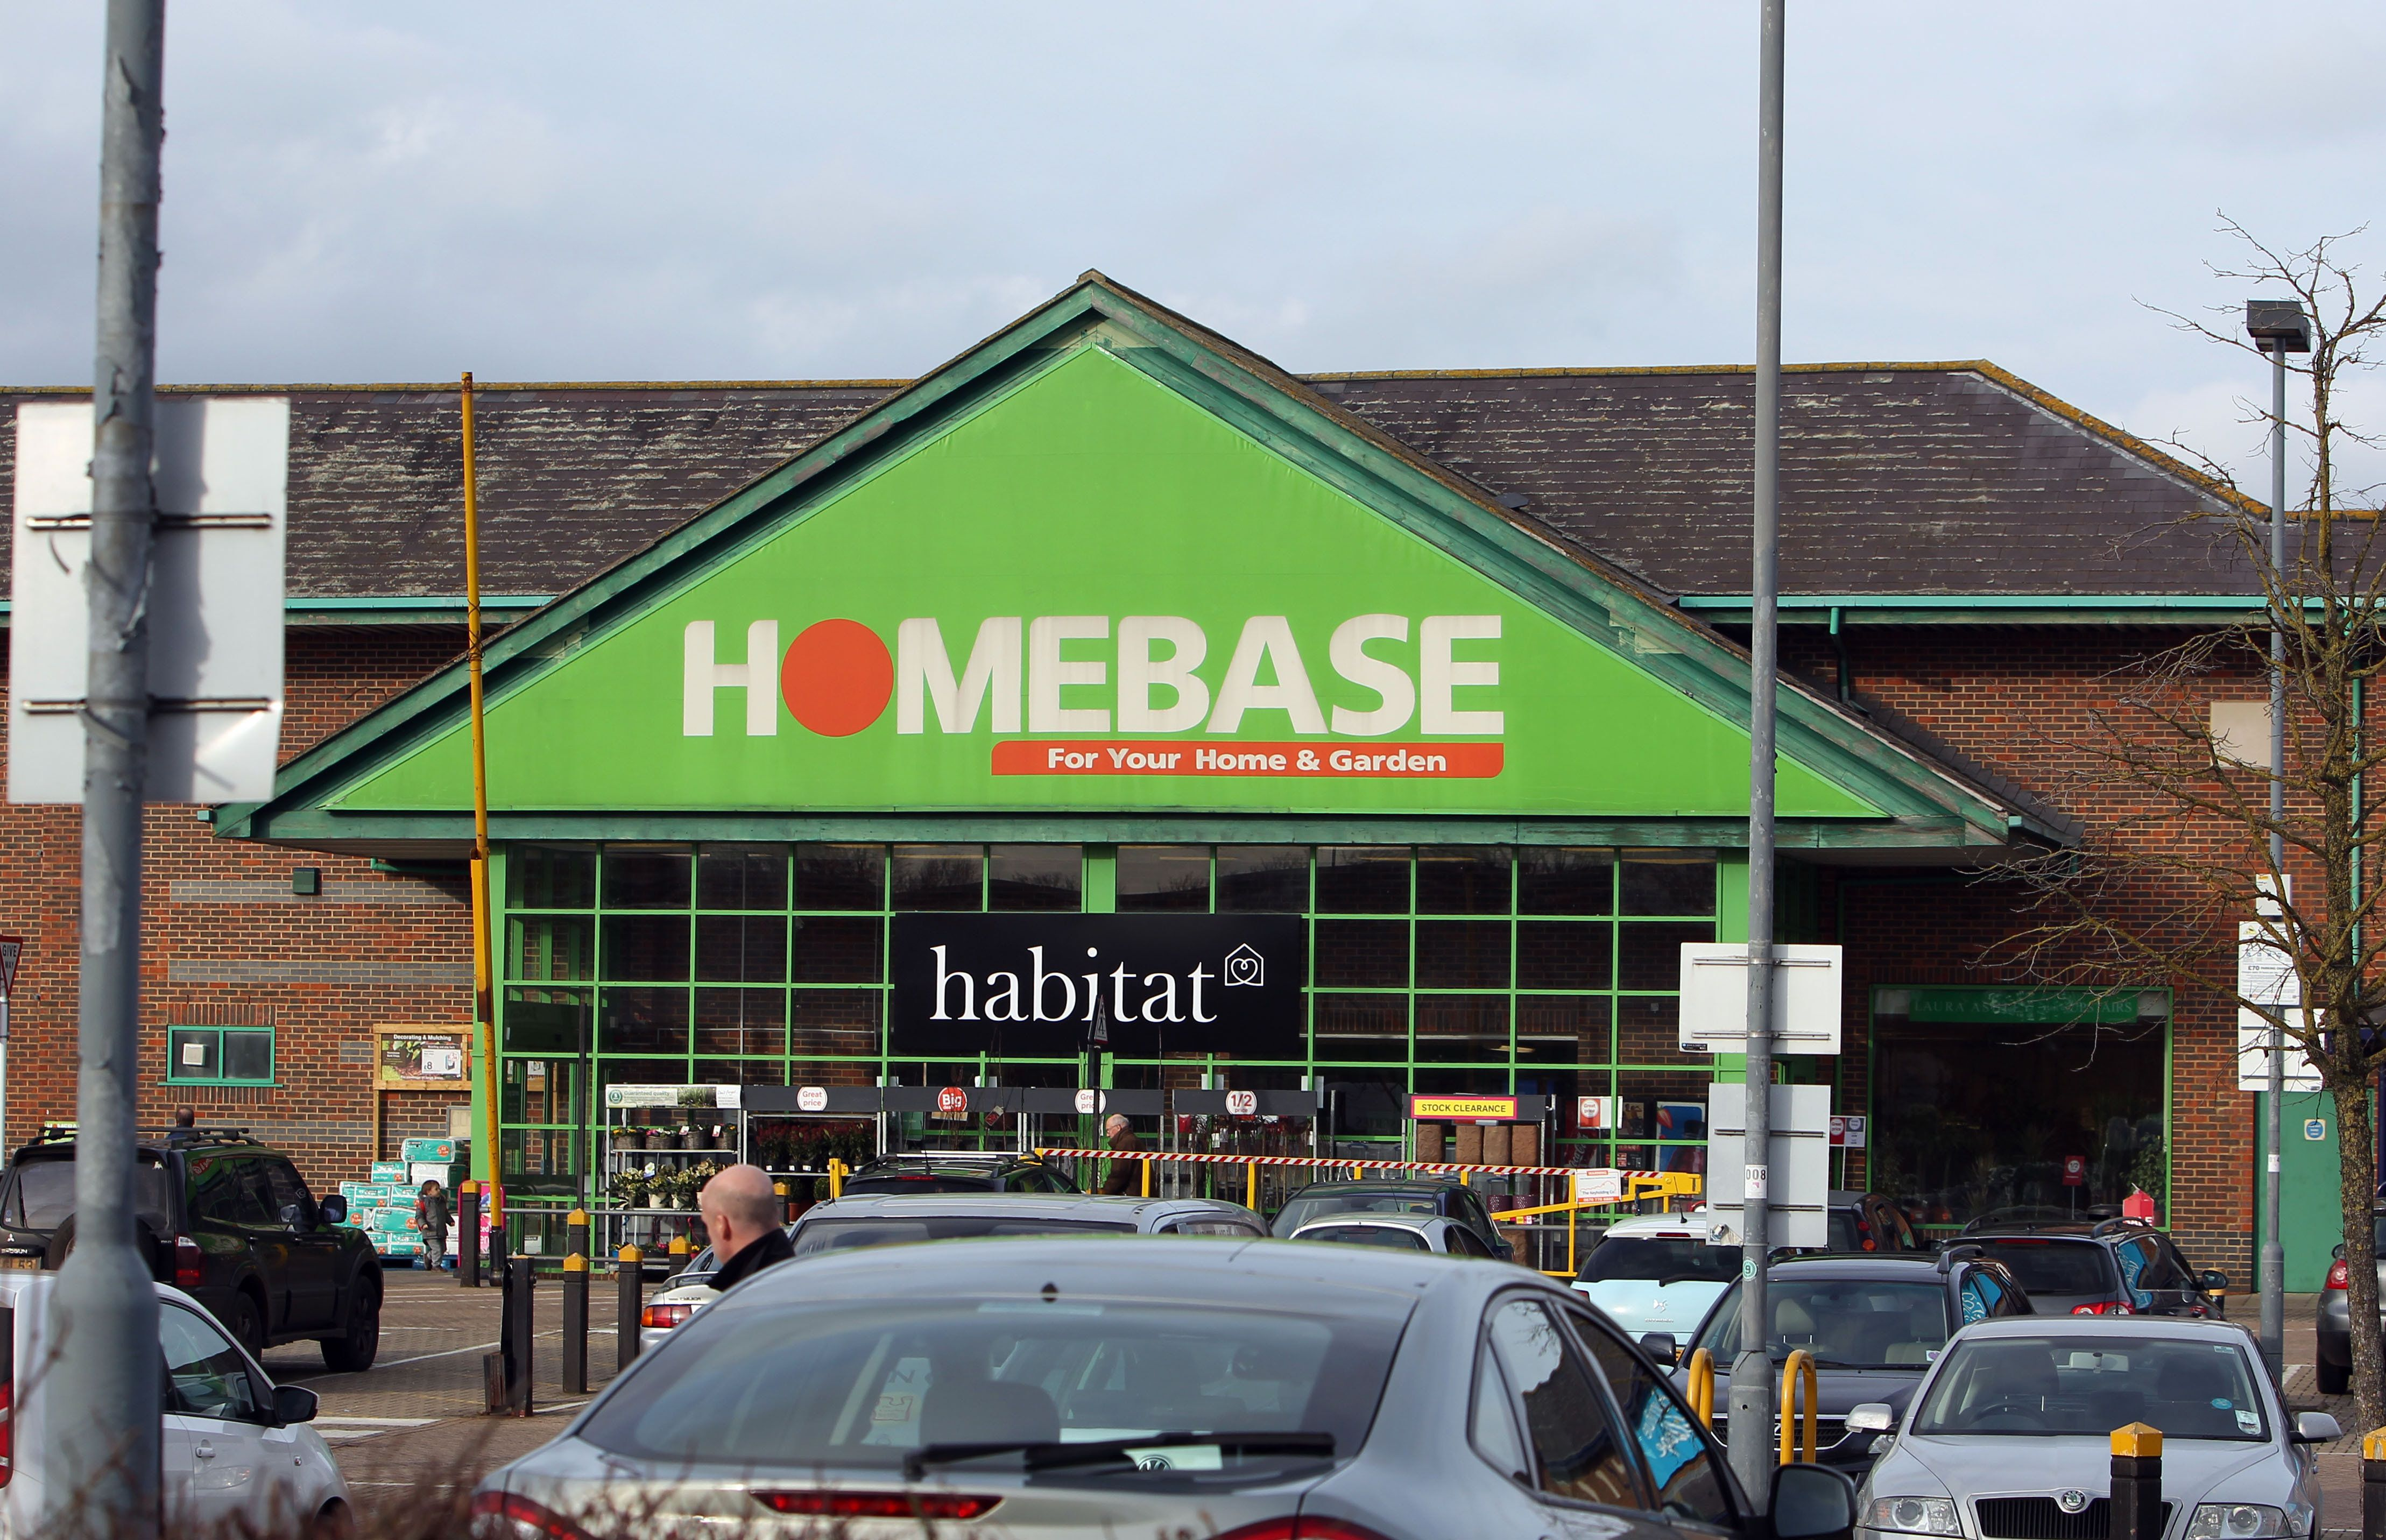 Homebase To Close 42 Stores, Putting 1,500 Jobs At